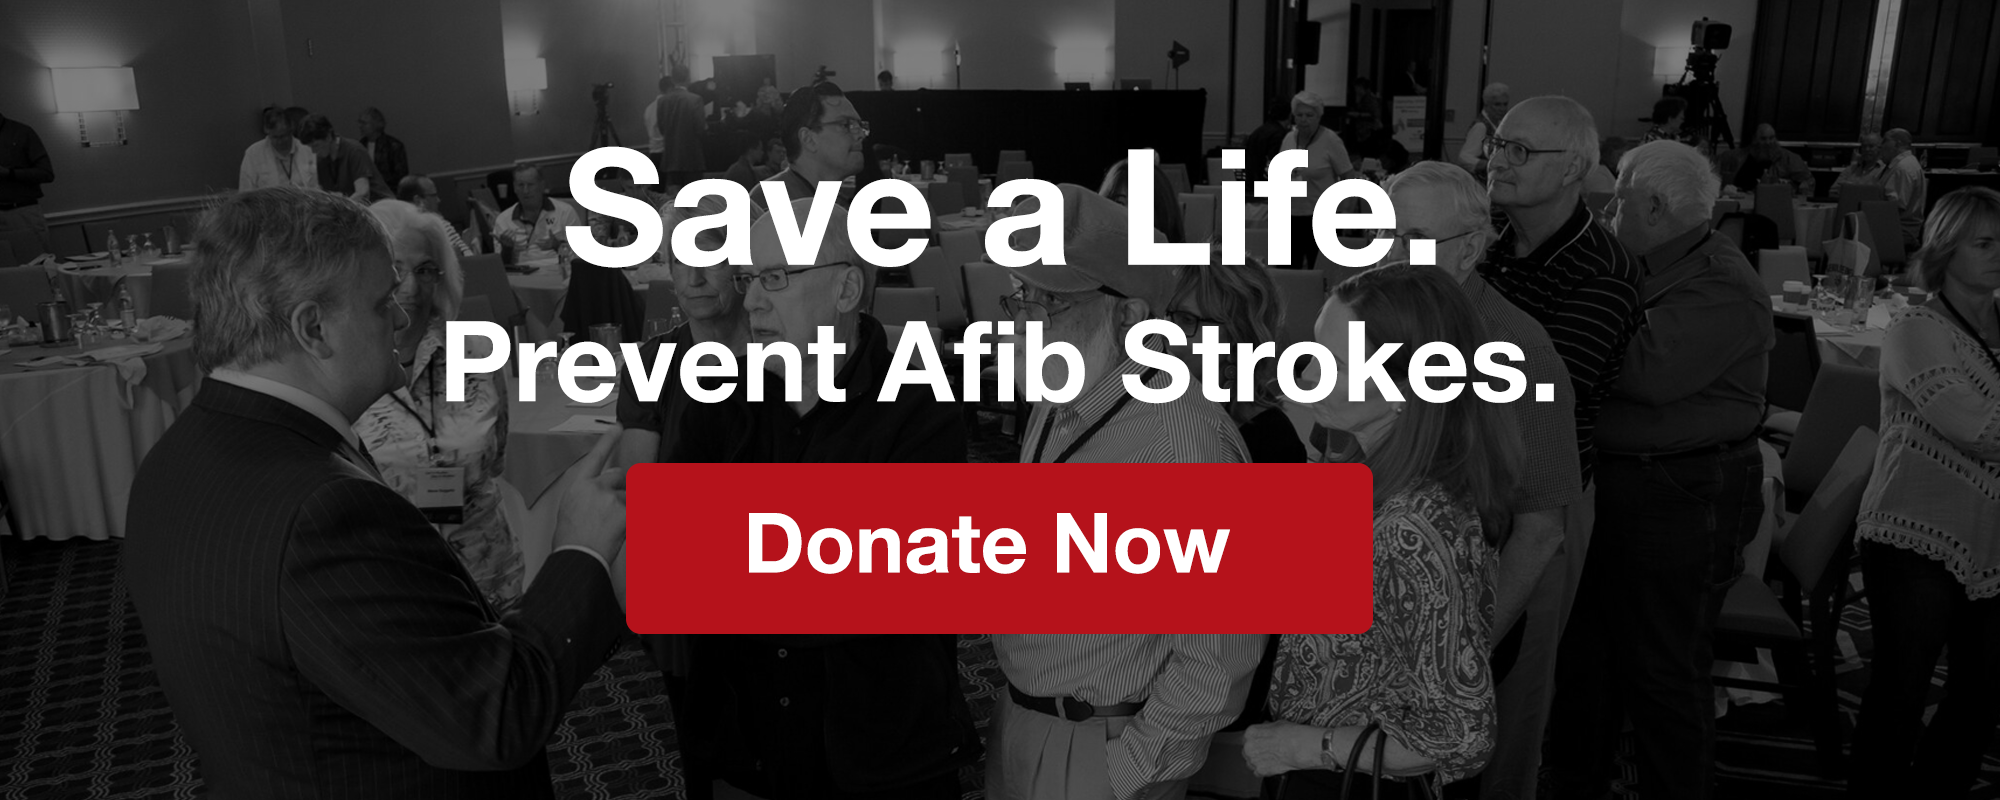 Stopafib-mc-donate-2000x800